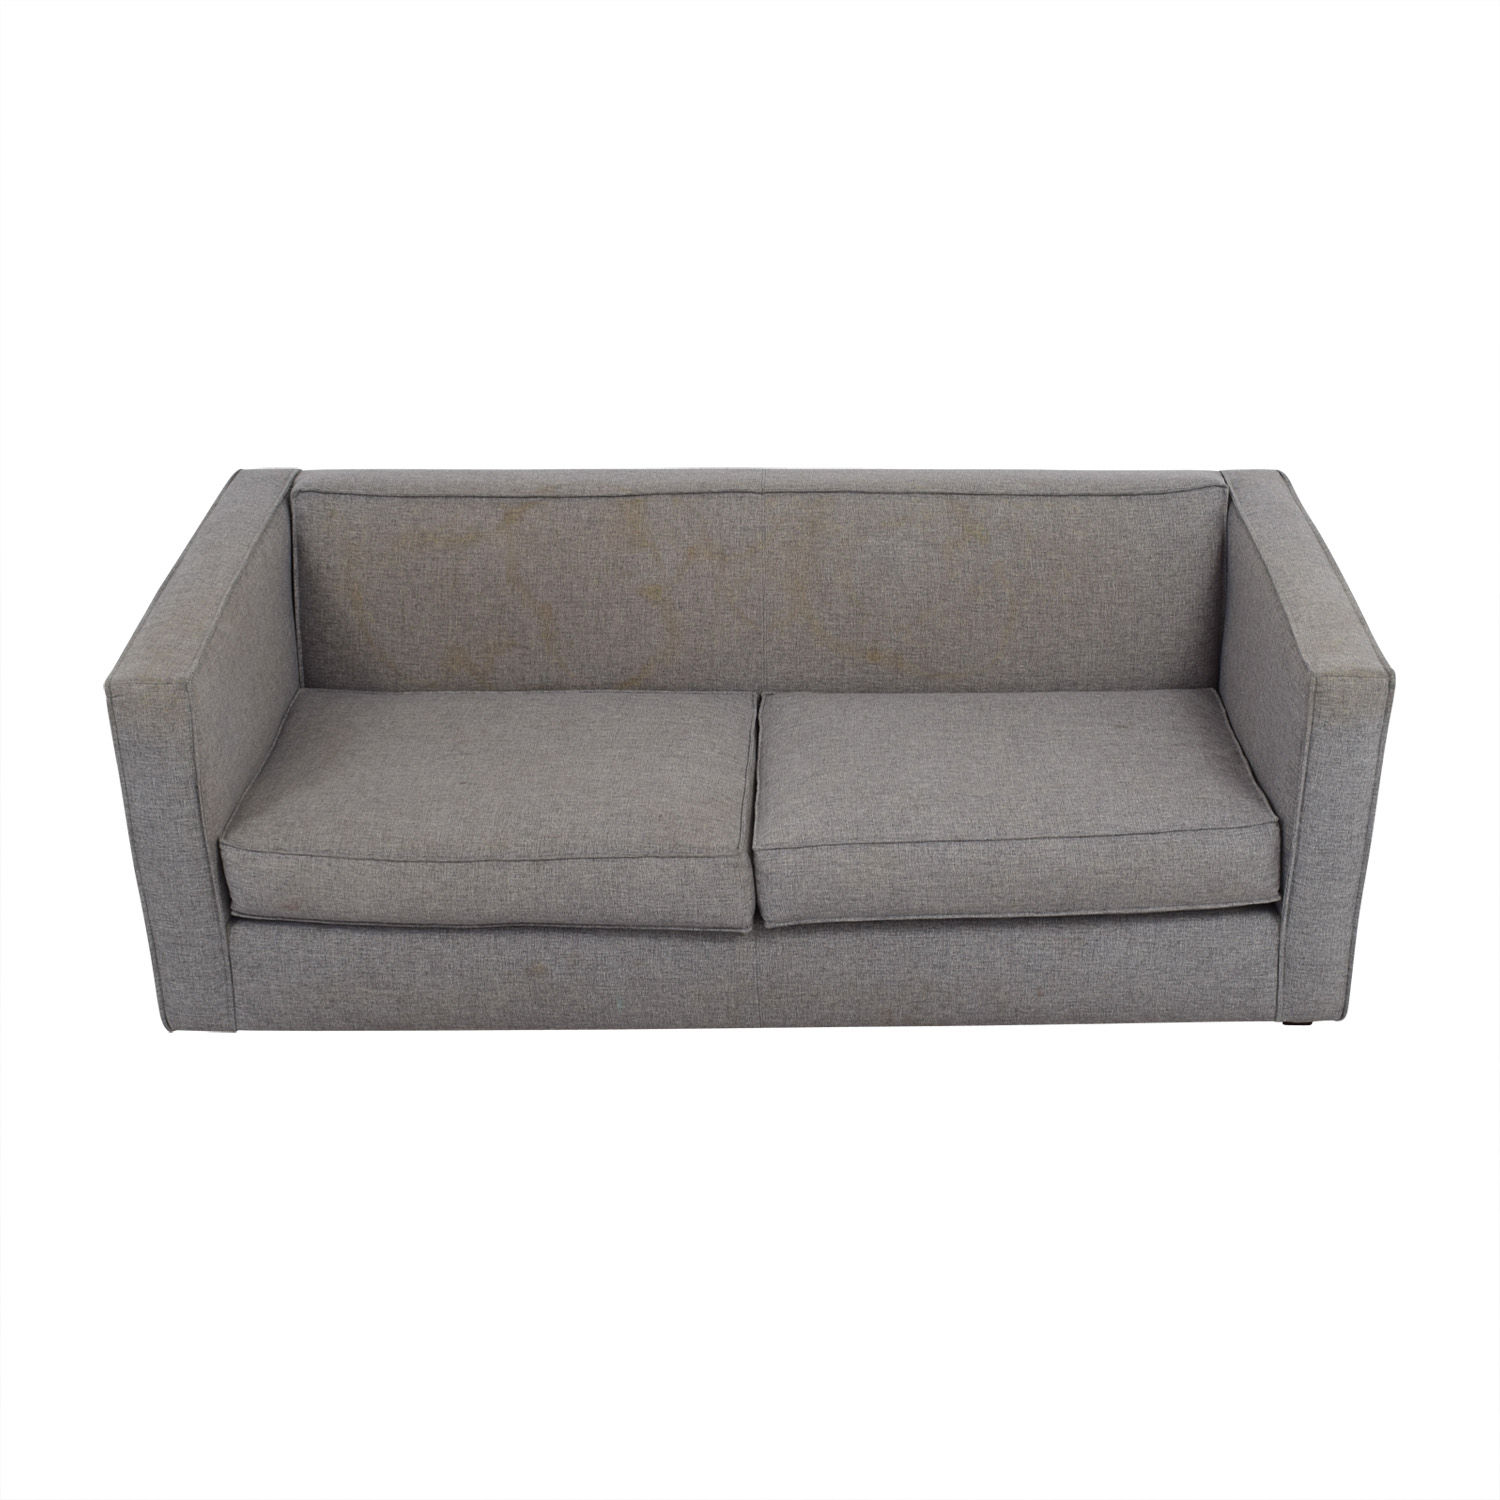 buy CB2 Club Grey Two-Cushion Sofa CB2